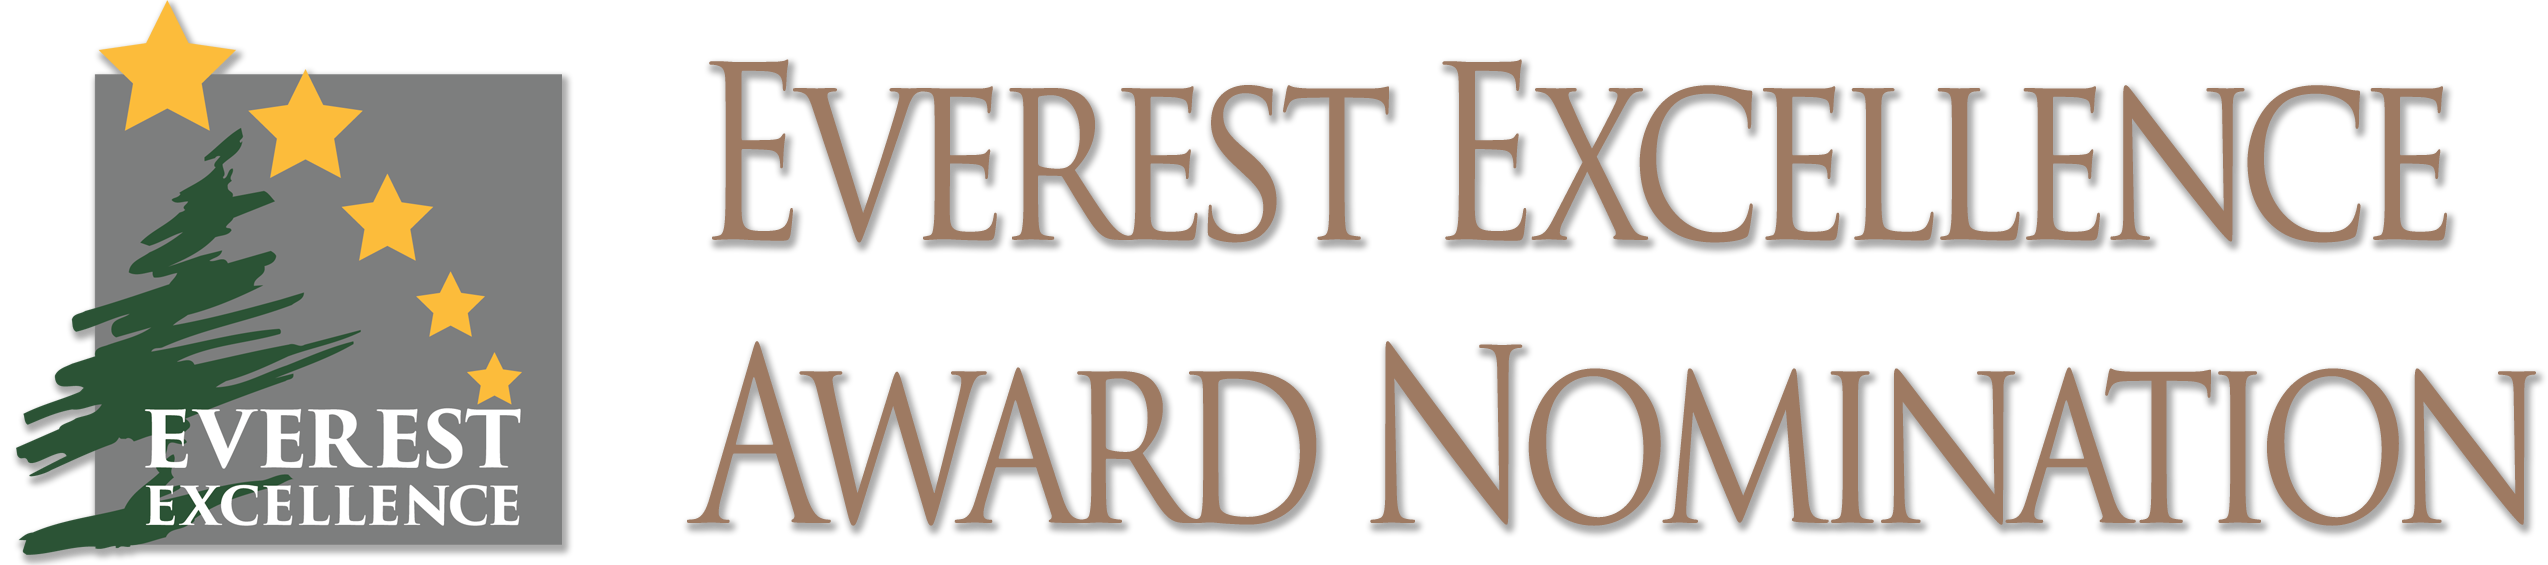 Everest Excellence Award Nominations